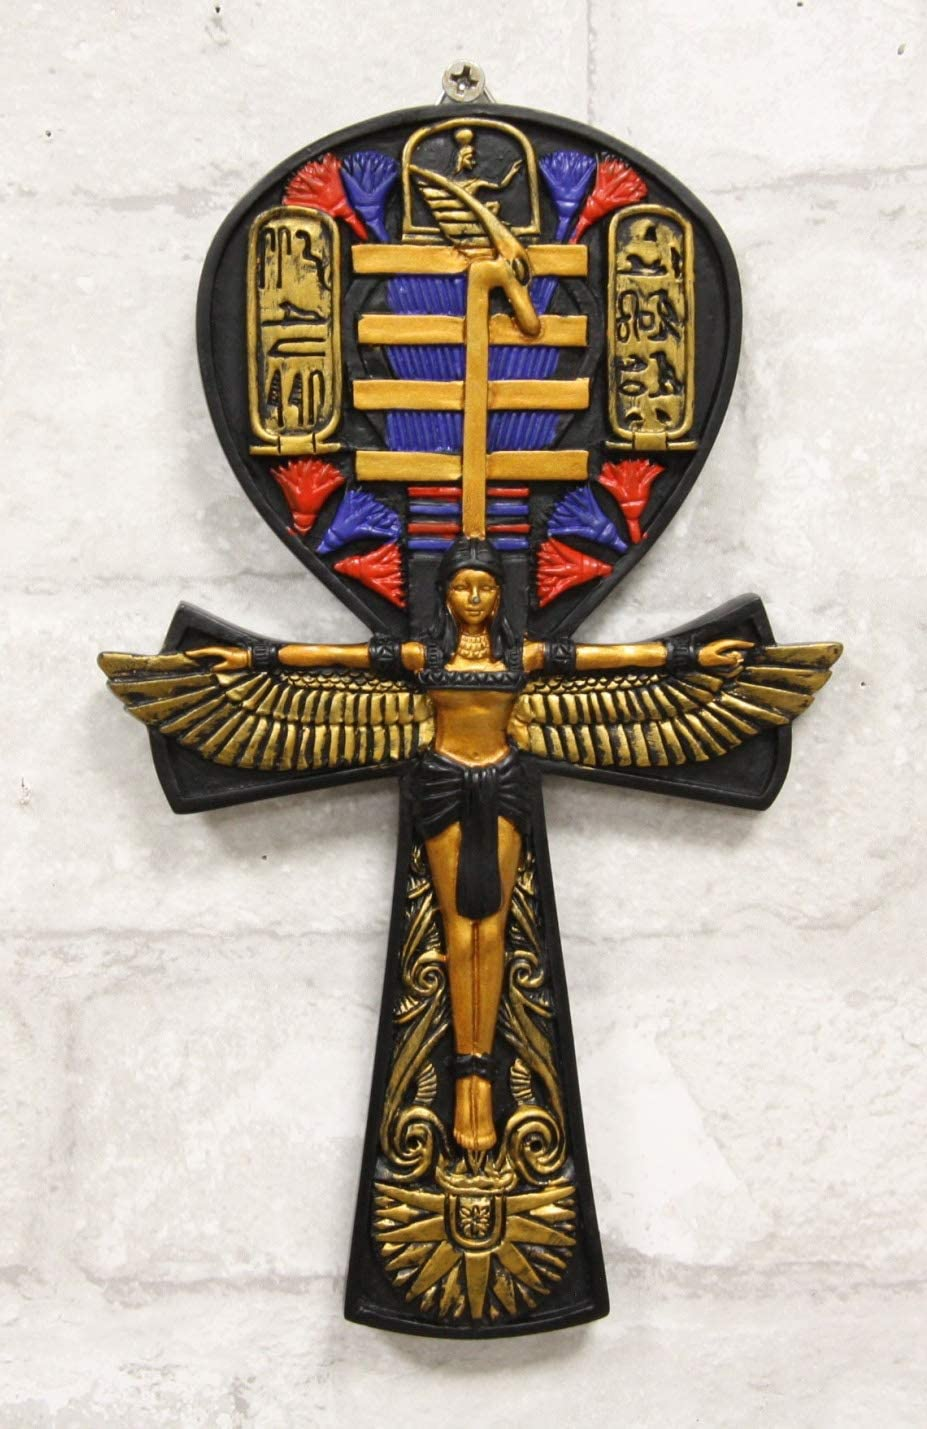 Ebros Crux Ansata Egyptian Ankh Of Isis With Open Wings And Cartouche Hieroglyphs Wall Decor Accent 3D Plaque Figurine 7.5